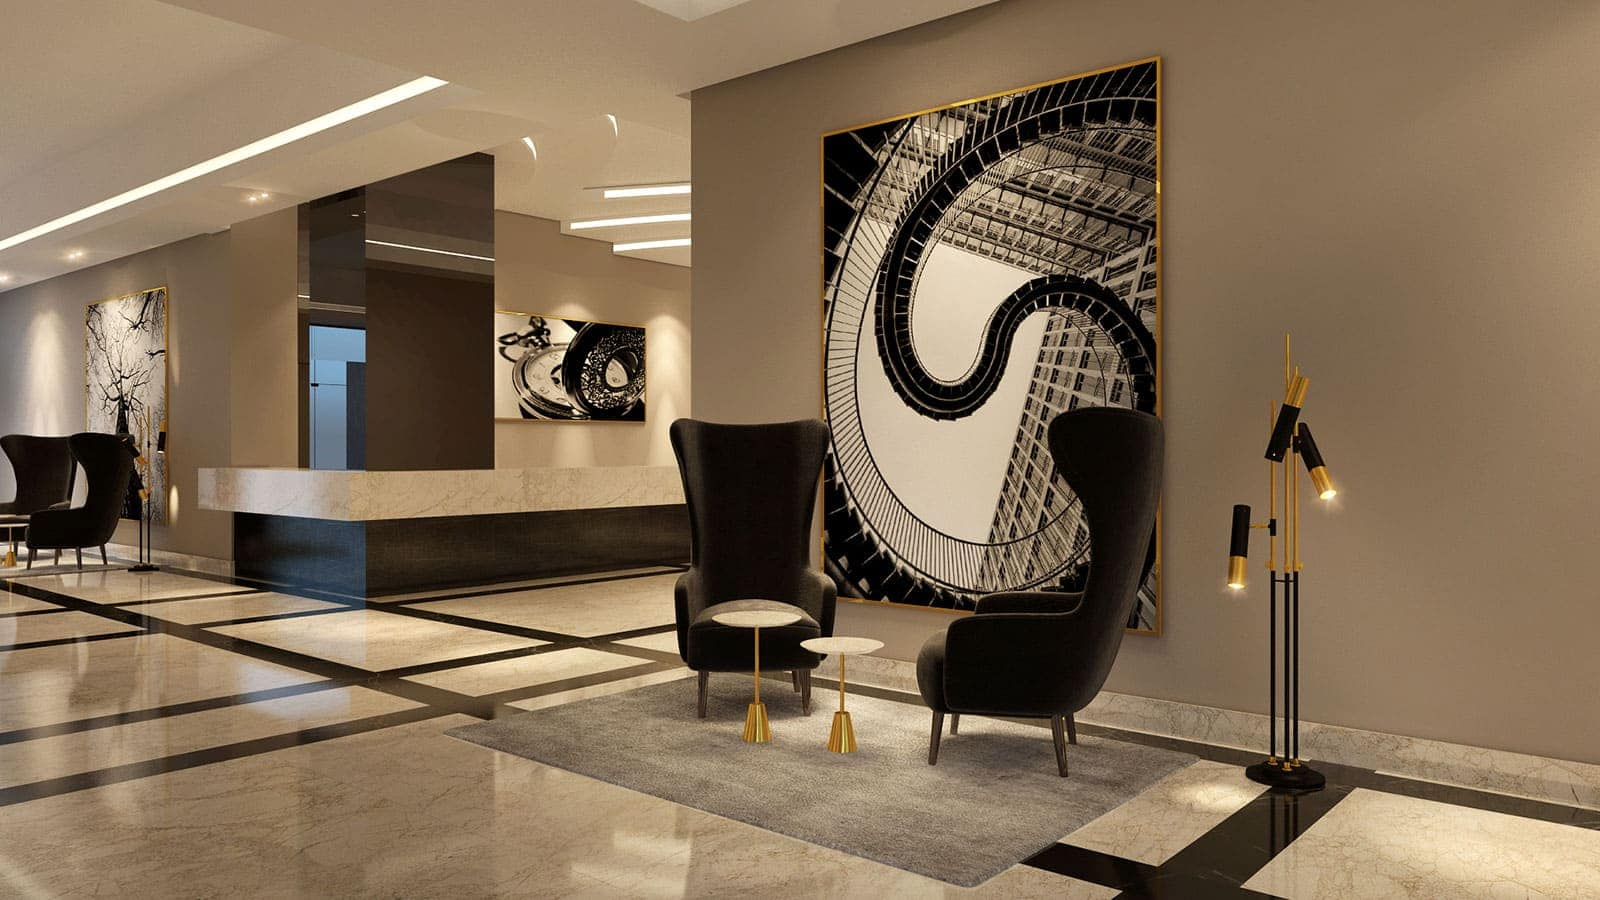 Interior design & fit-out for Lusail furnished apartments